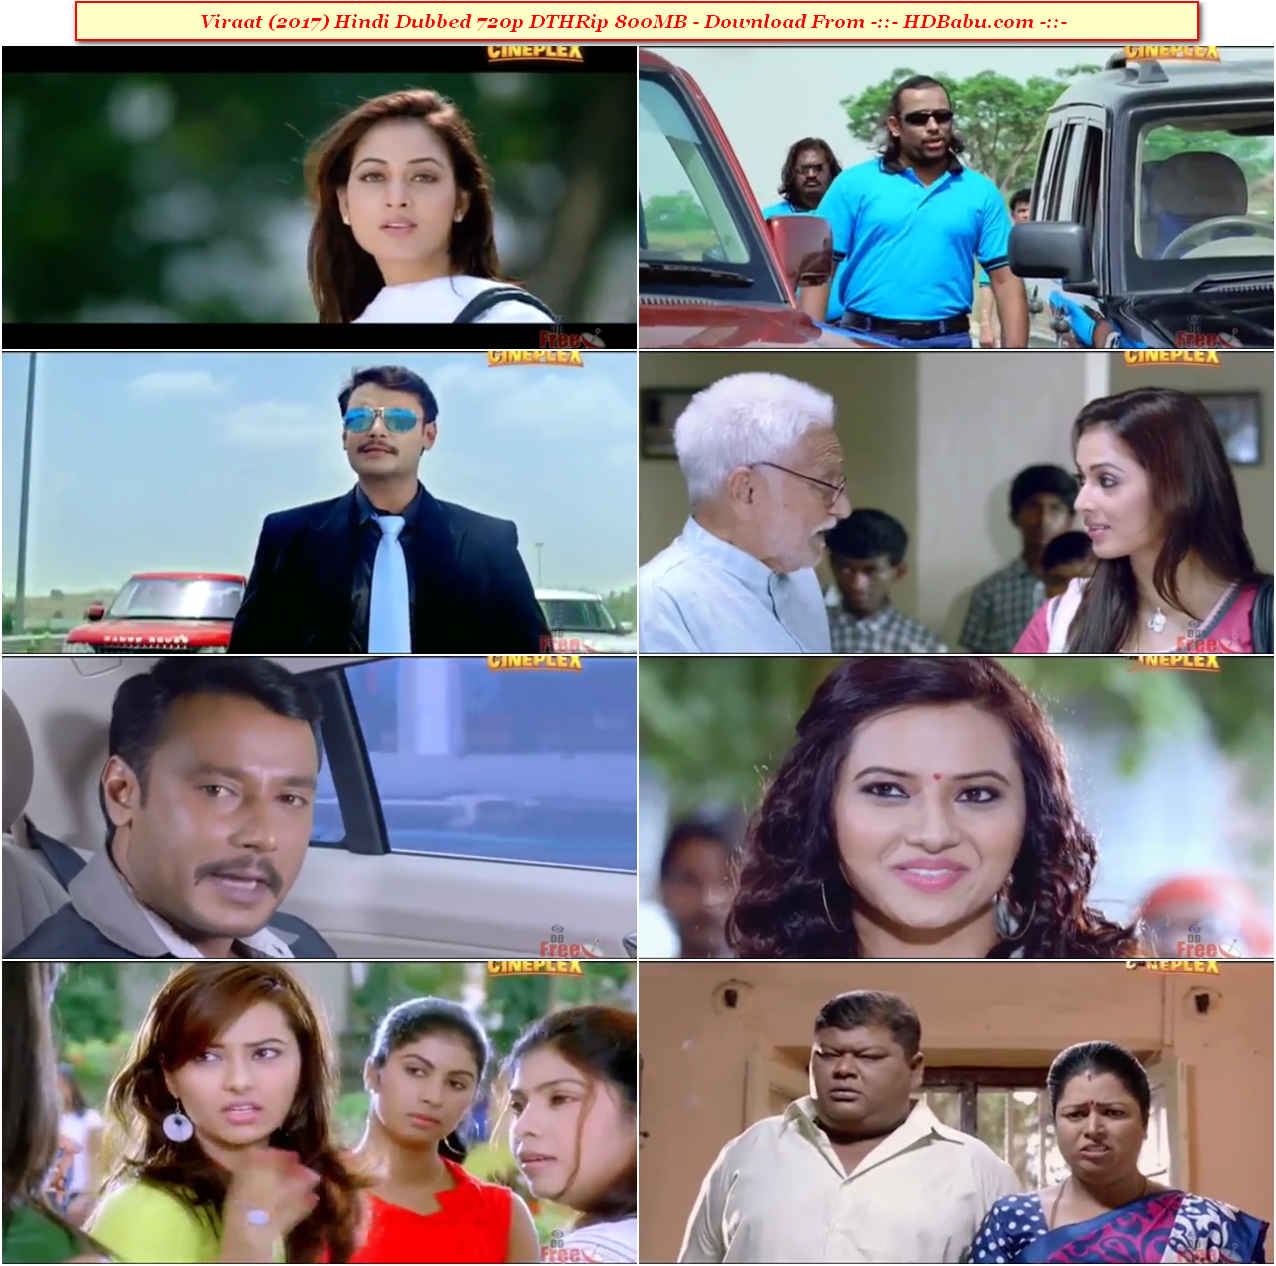 Viraat Hindi Dubbed Full Movie Download